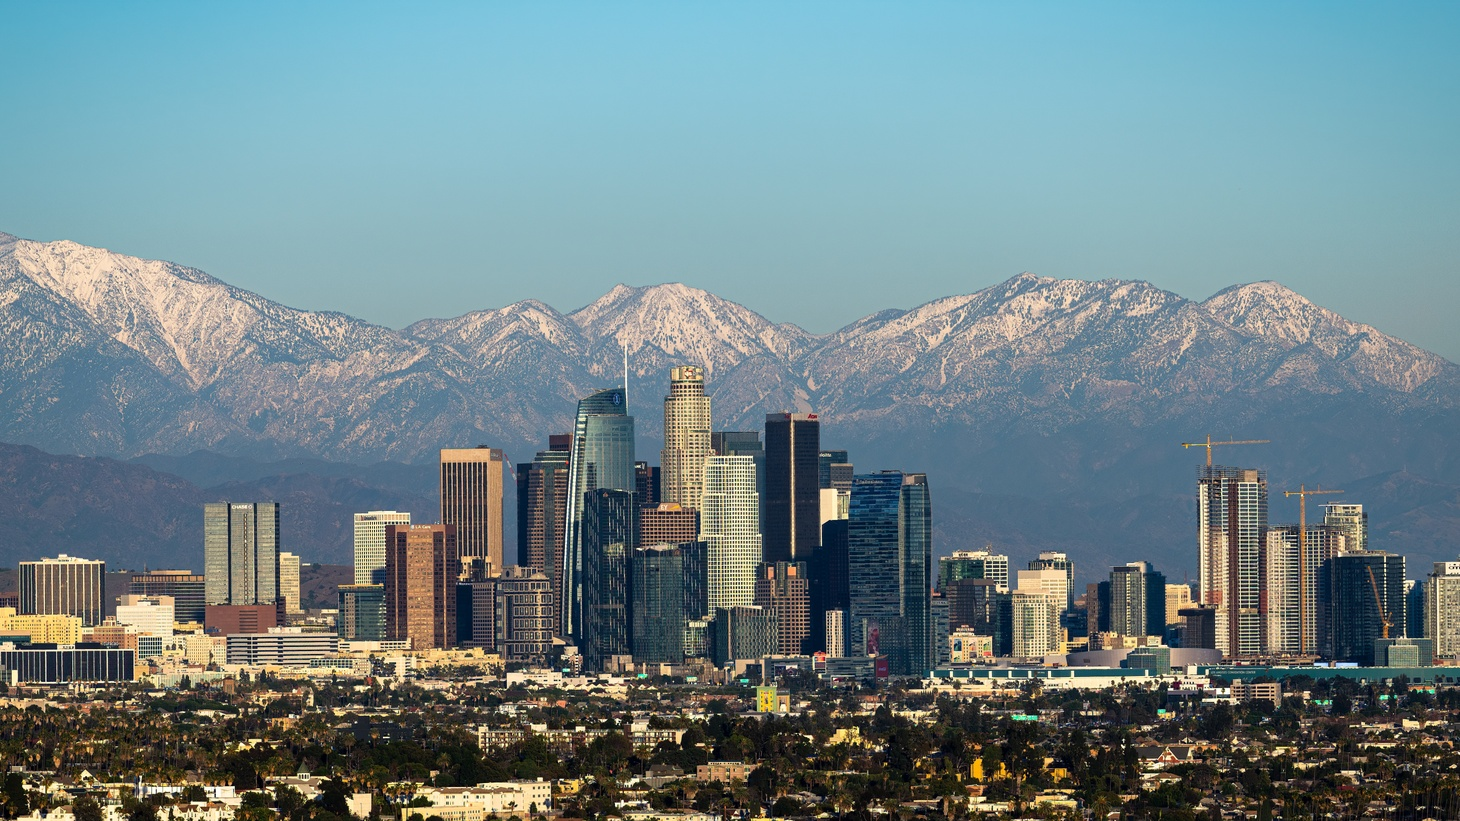 Snow-capped mountains are seen behind downtown LA, January 30, 2021.